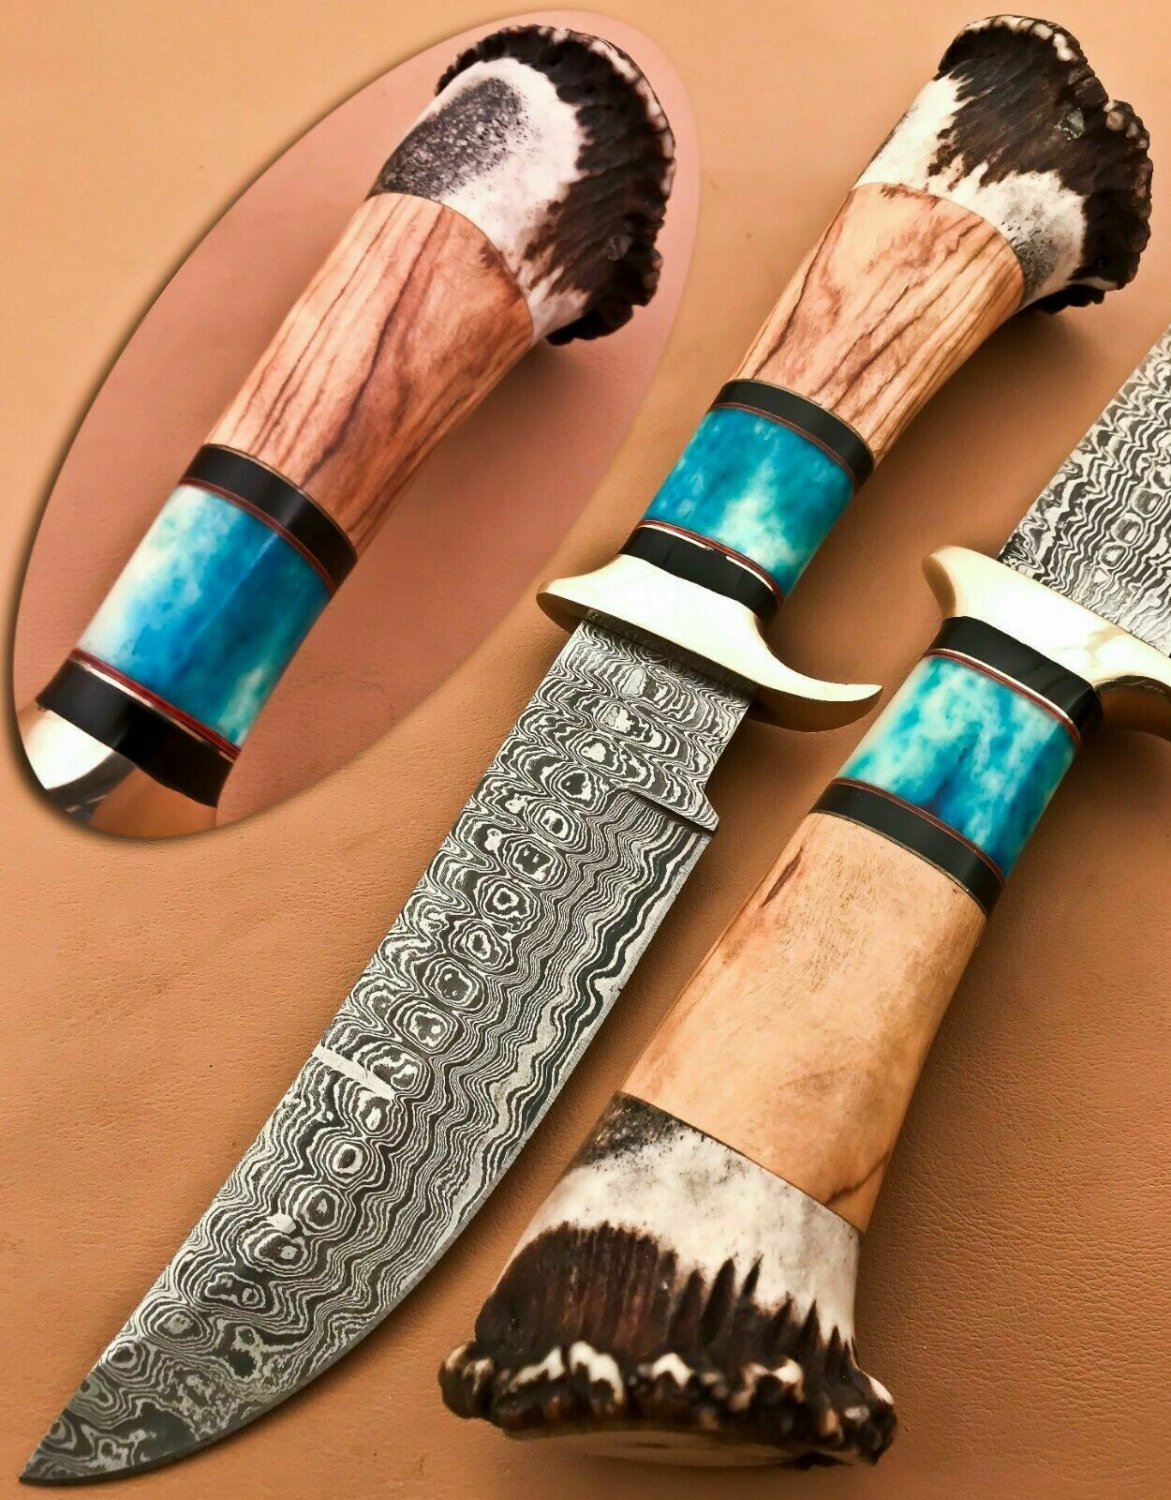 Hand forged custom made Damascus steel hunting Bowie knife